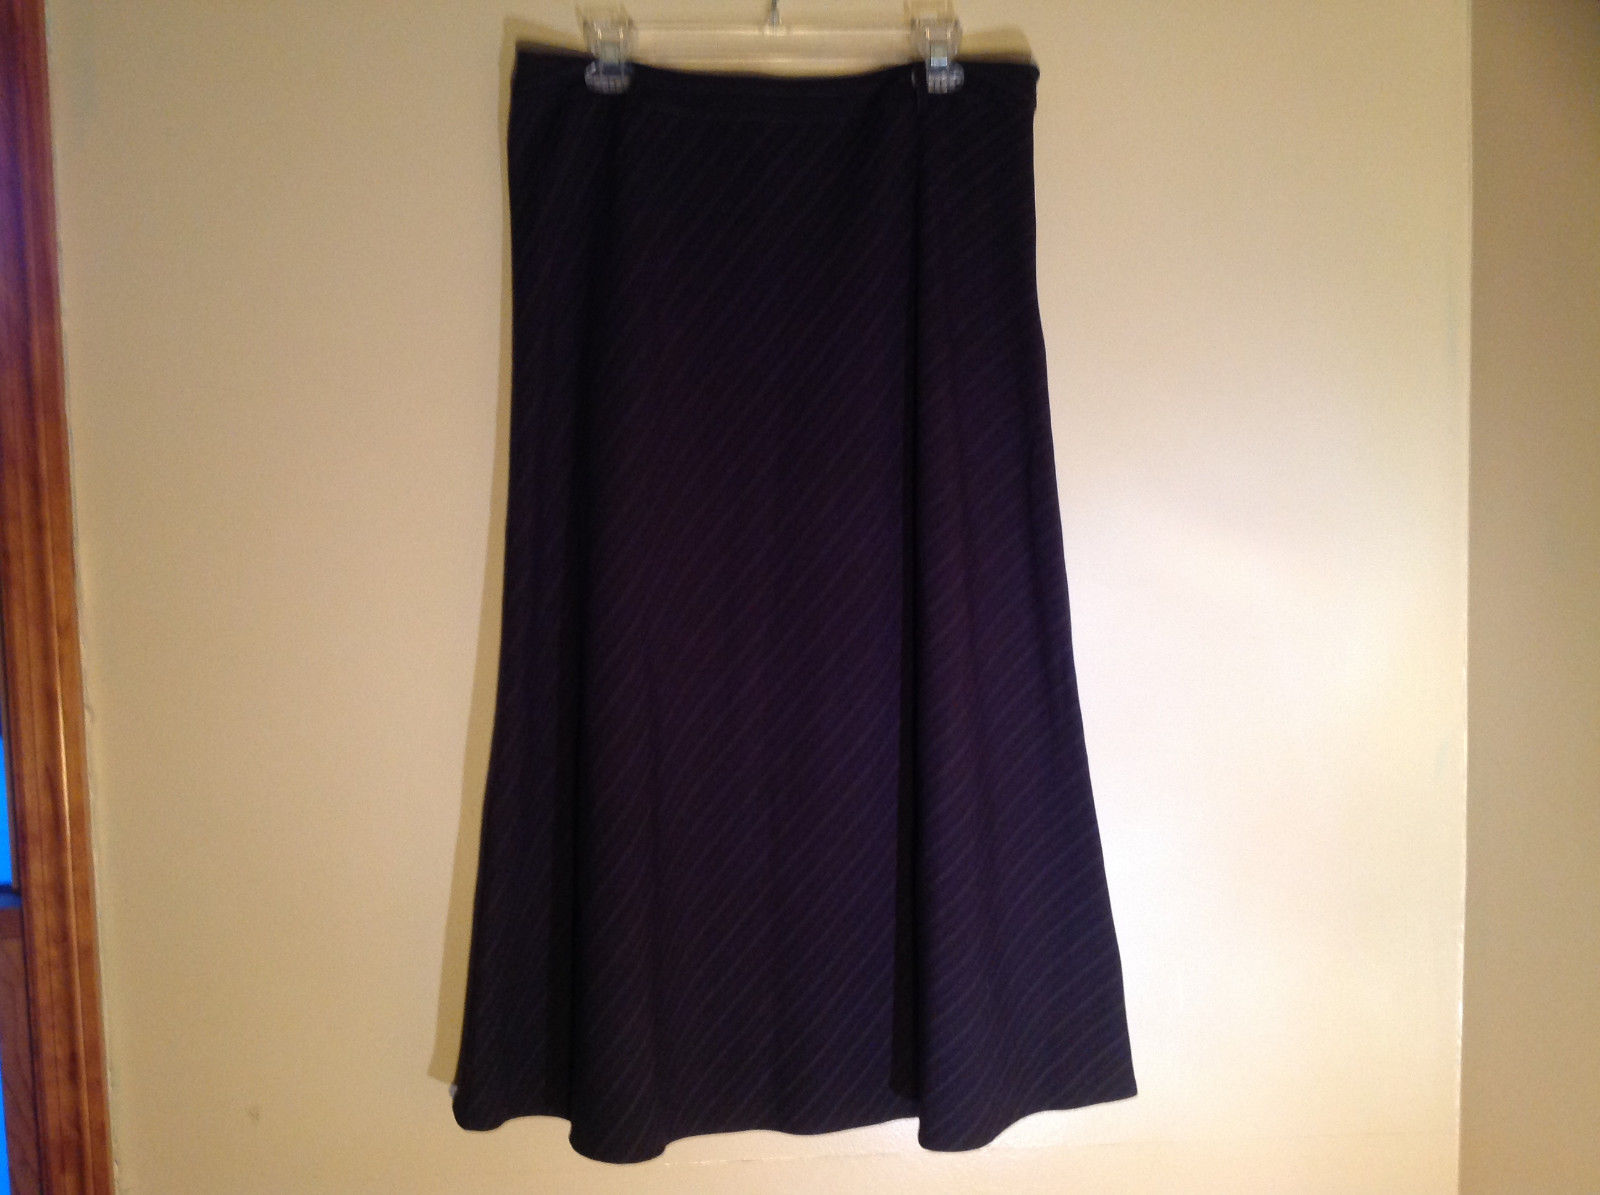 East 5th Black Diagonal Pin Striped Calf Length Skirt Belt Loops Size 14